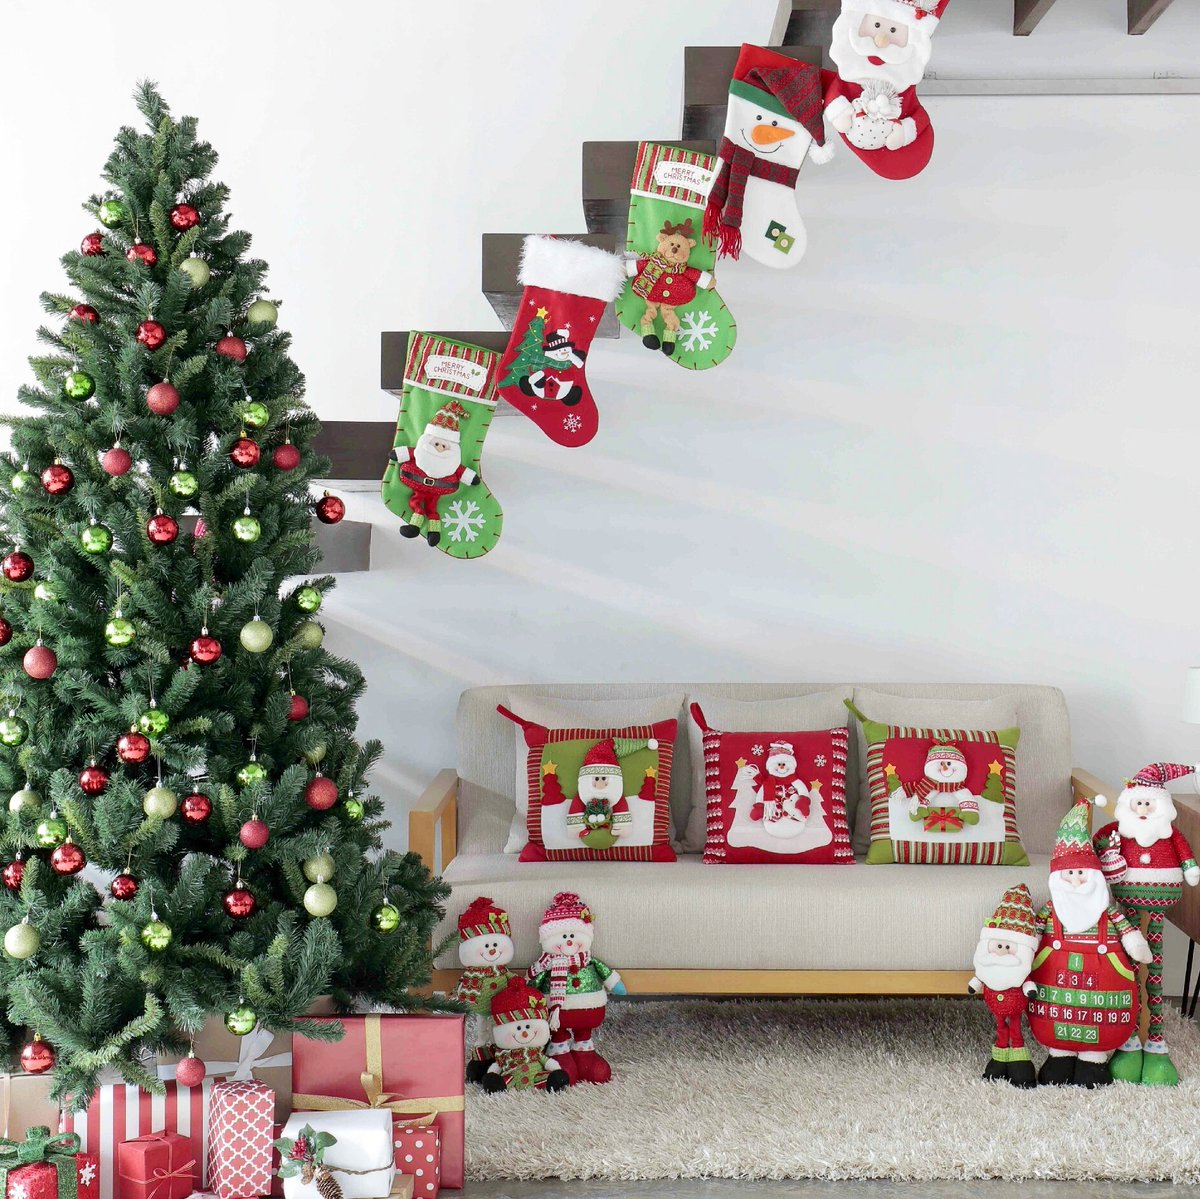 sm home on twitter christmas decor items now available at the sm store christmas2016 smhome thesmstore home homedecor christmas - At Home Store Christmas Decorations